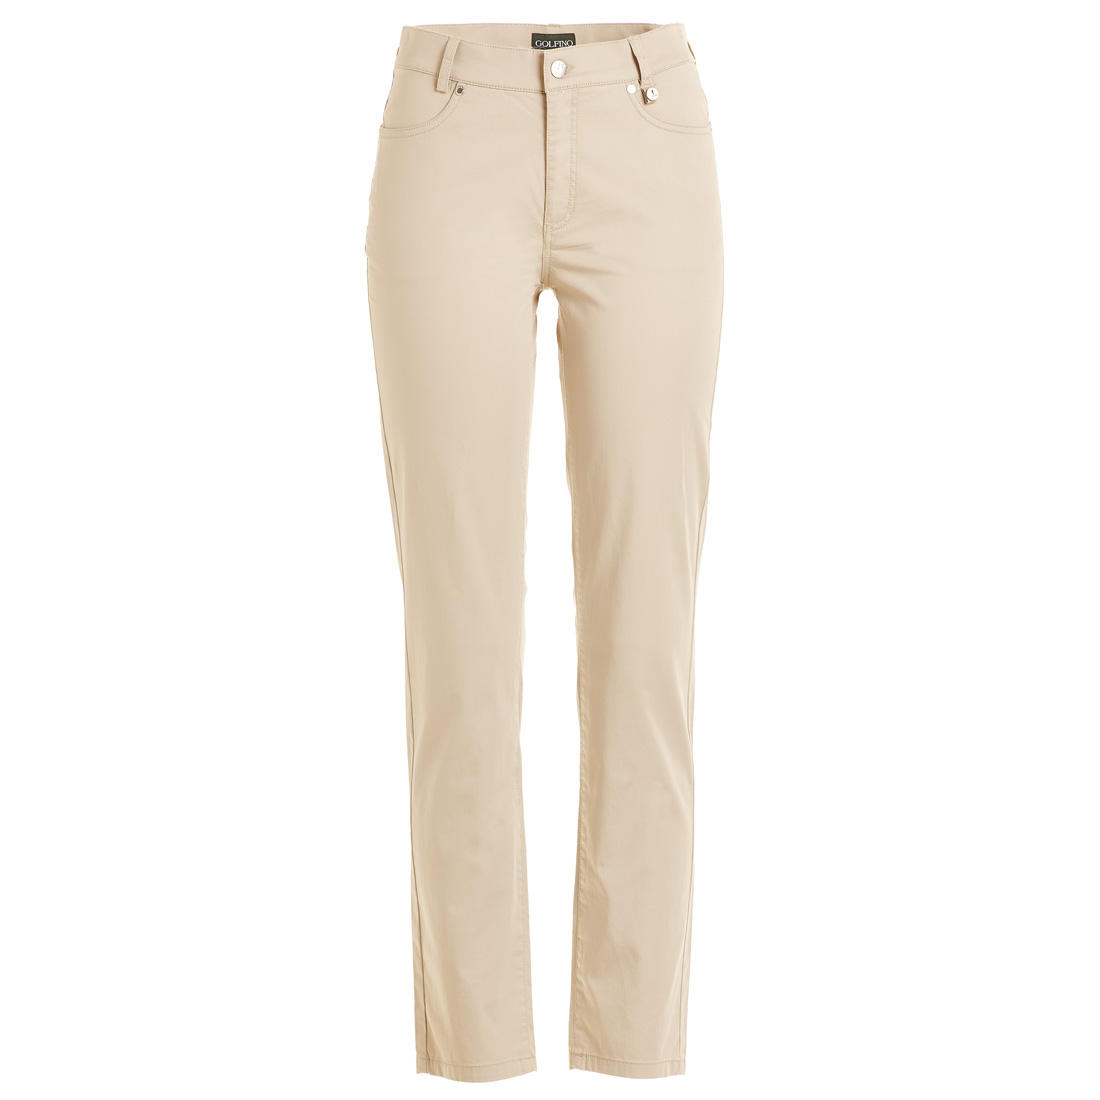 Damen 7/8-Baumwoll Stretch Hose